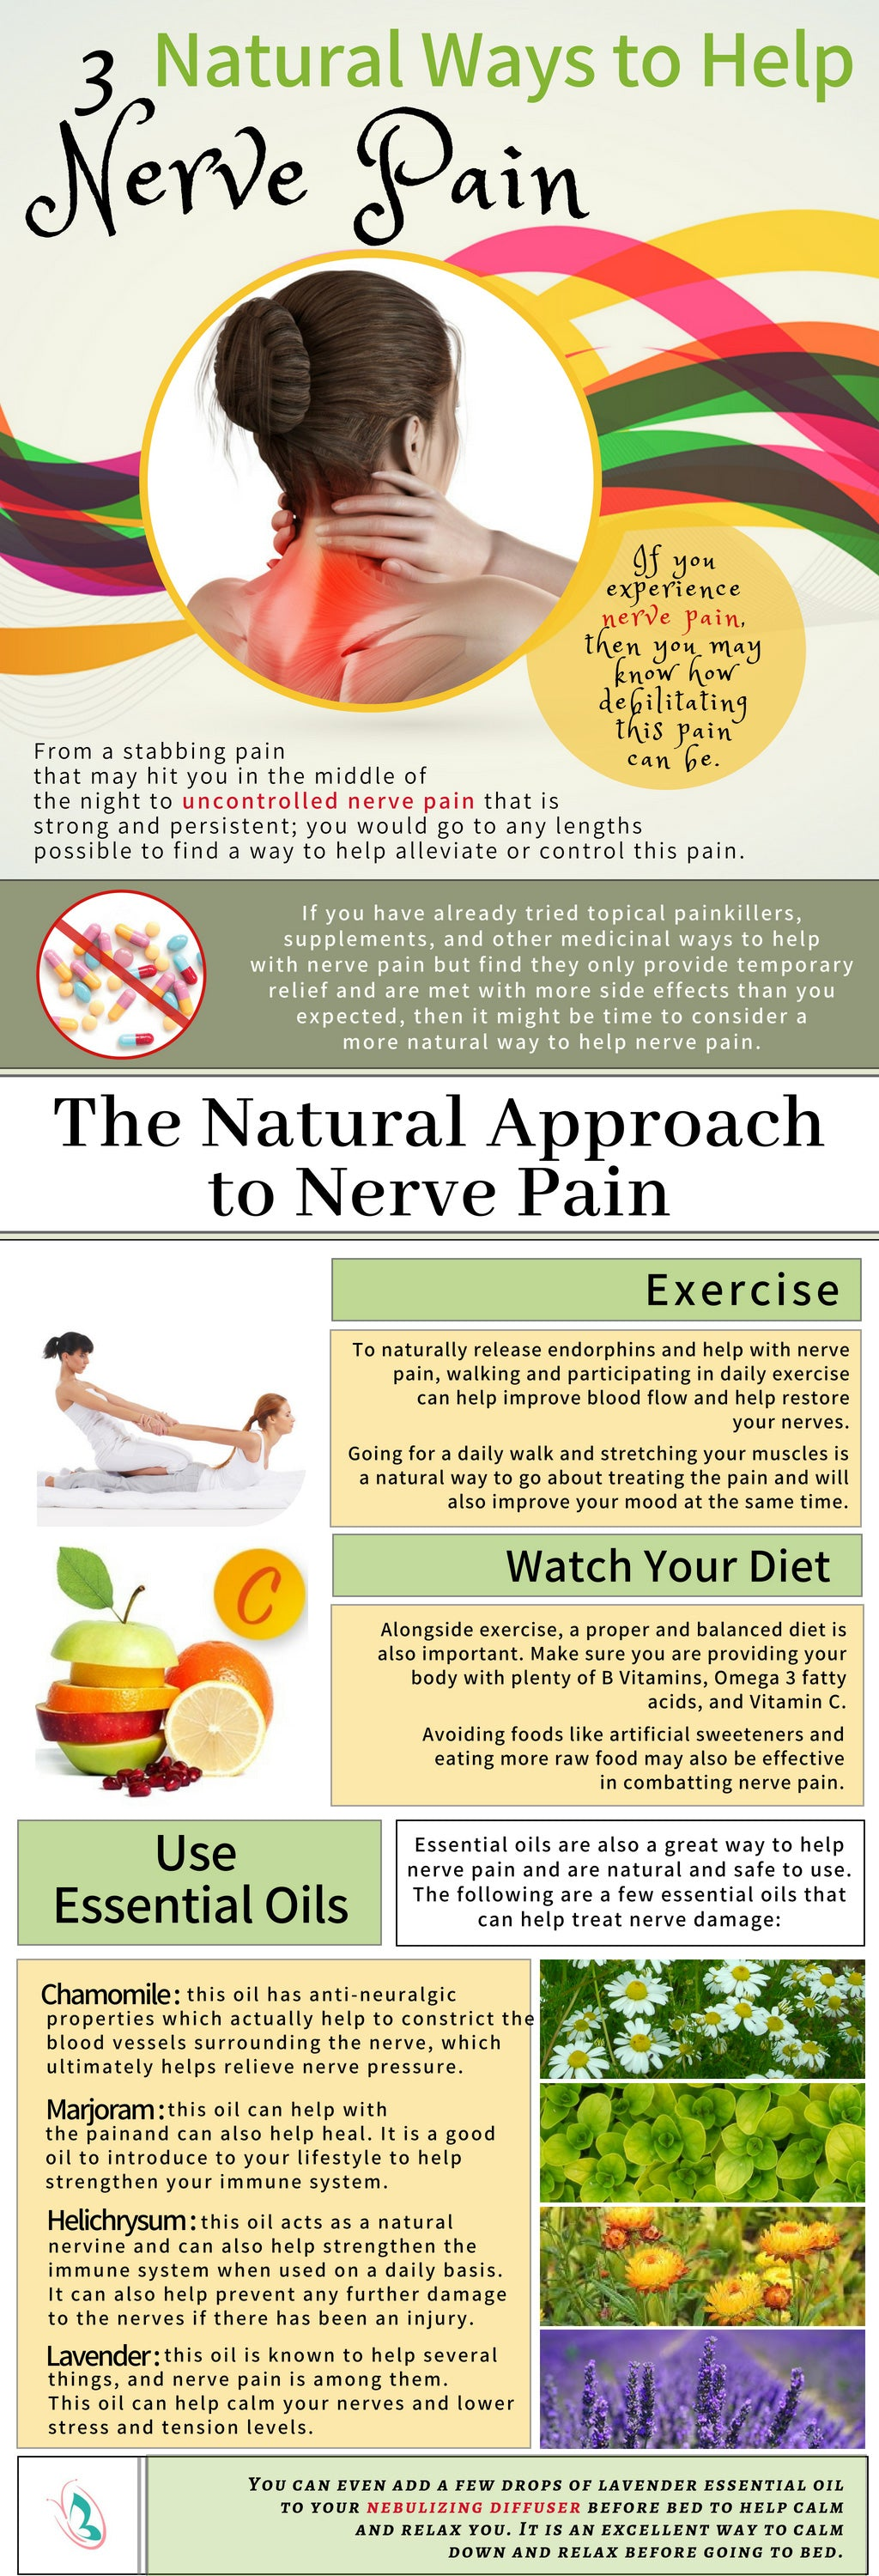 3 Natural Ways to Help Nerve Pain